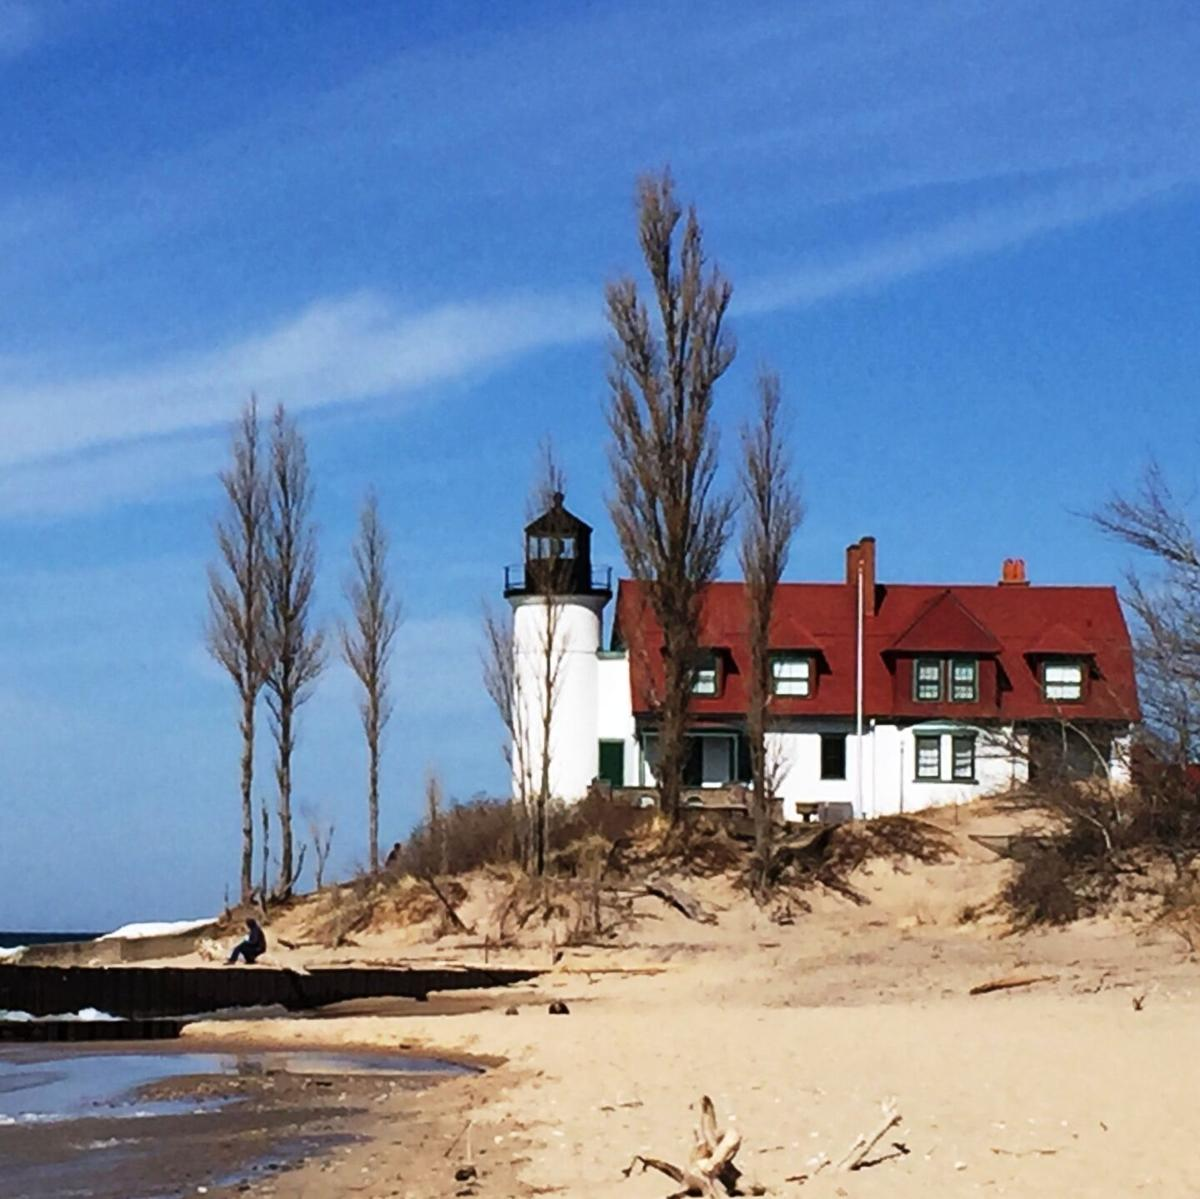 goeyes042921Spring weekend at Point Betsie Lighthouse. Photo by Janine Shelley.jpg